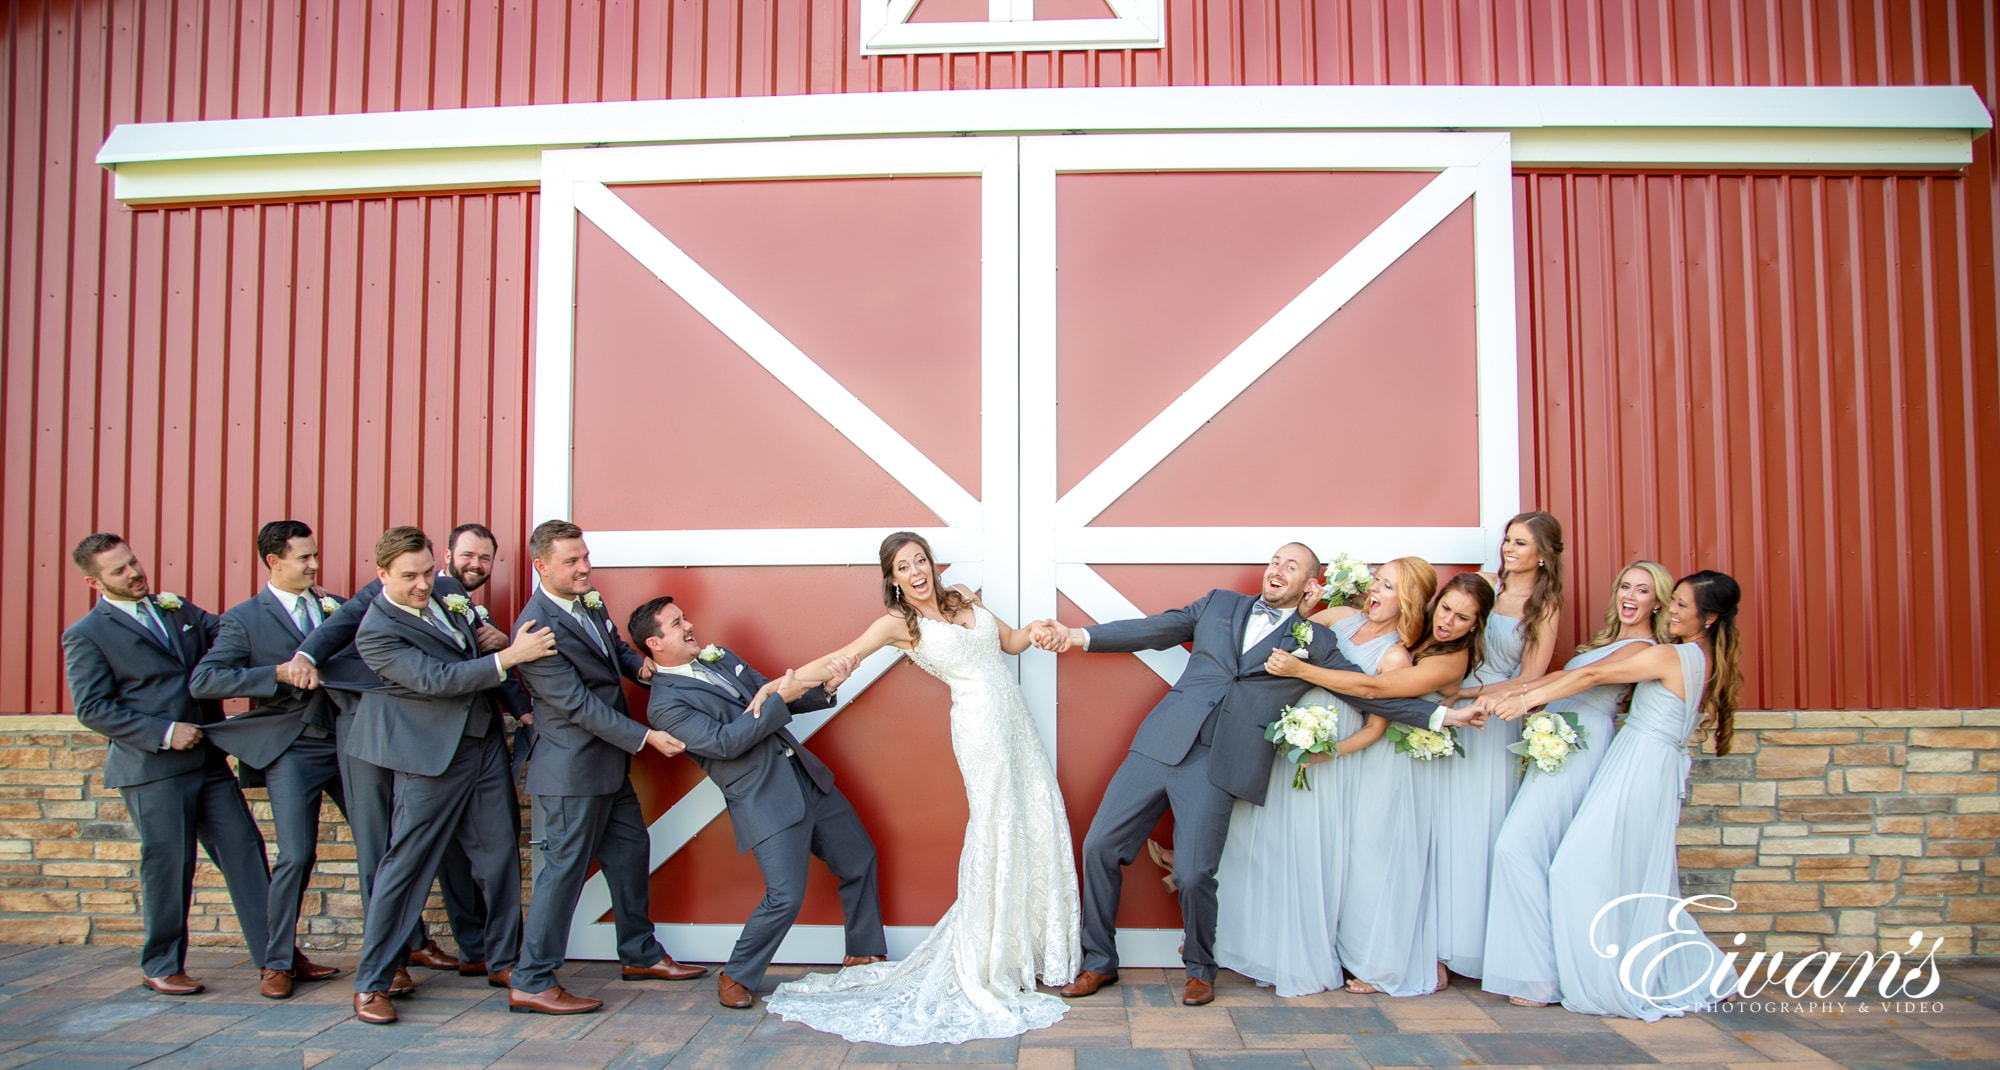 Bridal party posed in front of big red barn doors